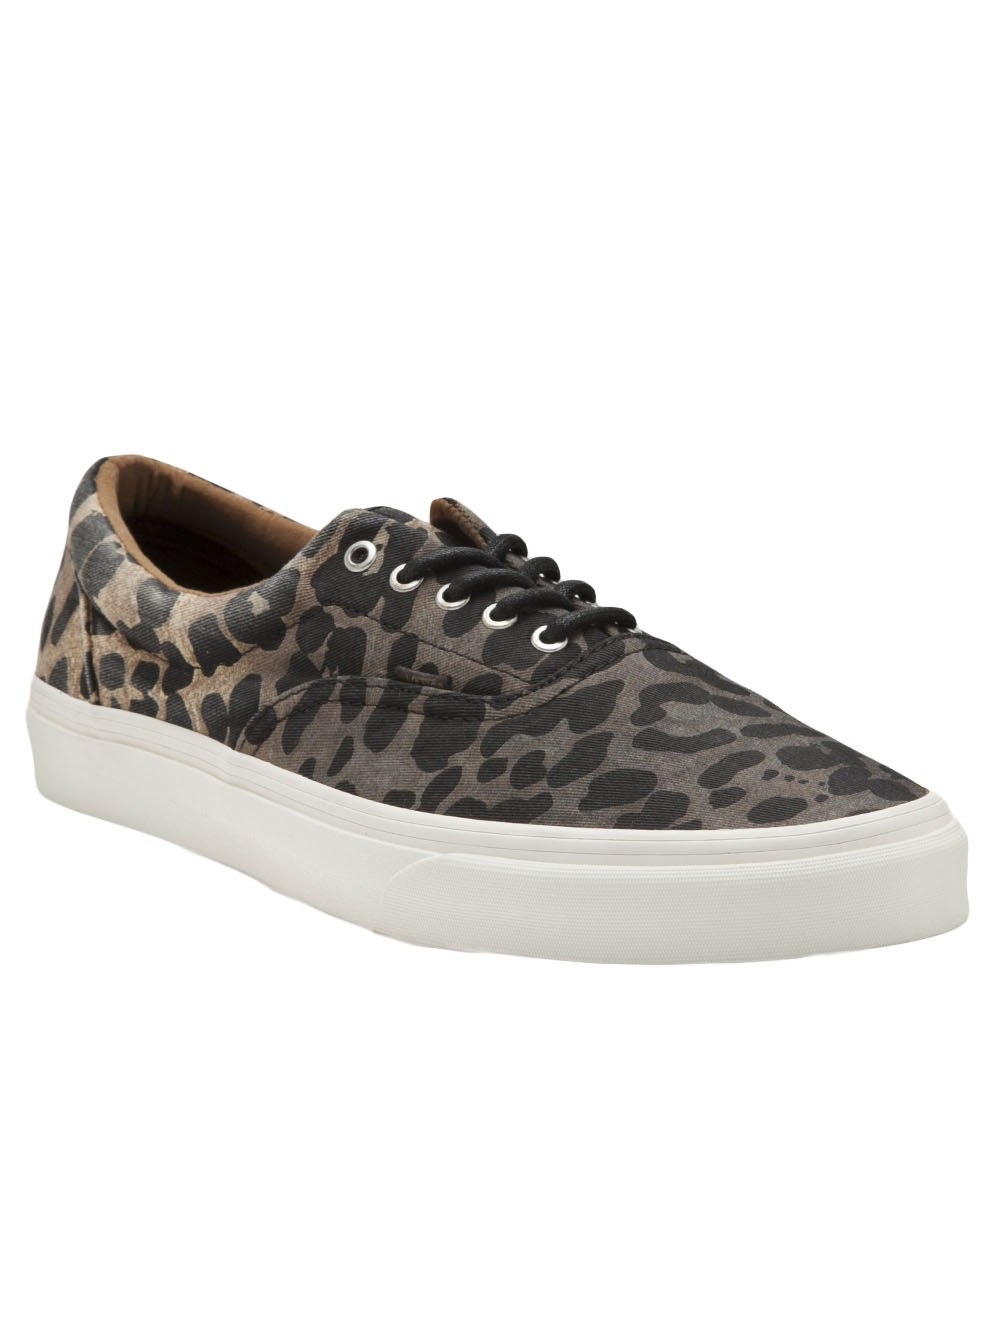 Shop for Leopard print men shirt. The best choice online for Leopard print men shirt is at needloanbadcredit.cf where shipping is always free to any Zumiez store. Vans Slip-On Pink & Black Leopard Print Skate Shoes $ $ Buy 1 Get 1 50% off Quick View Dravus Jim Fly Print .